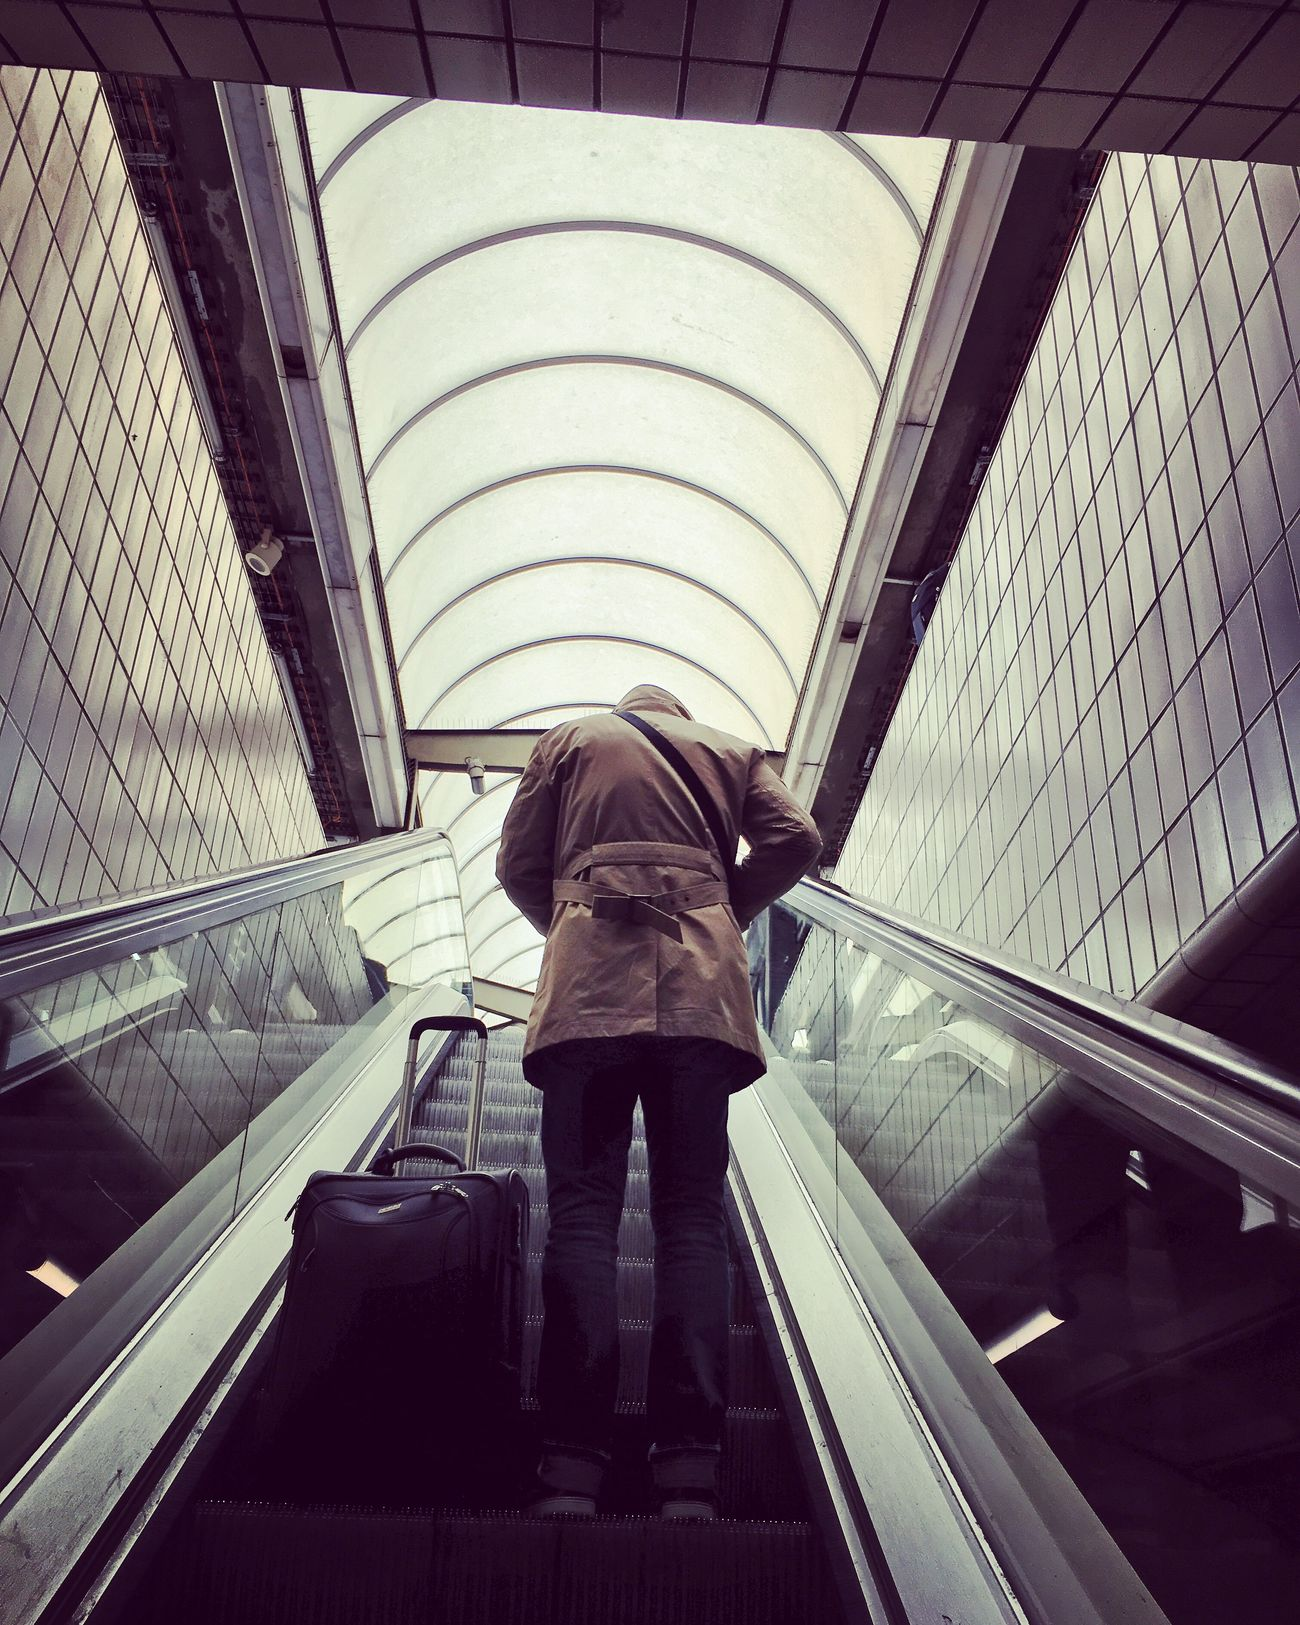 The Headless Man Lyon Station Escalator Perspective Low Angle View Geometry Urbanphotography Traveler Suitcase Trip Light And Shadow Lines Mmaff From My Point Of View Eye4photography  EyeEm Gallery Taking Photos Hello World EyeEm Best Edits